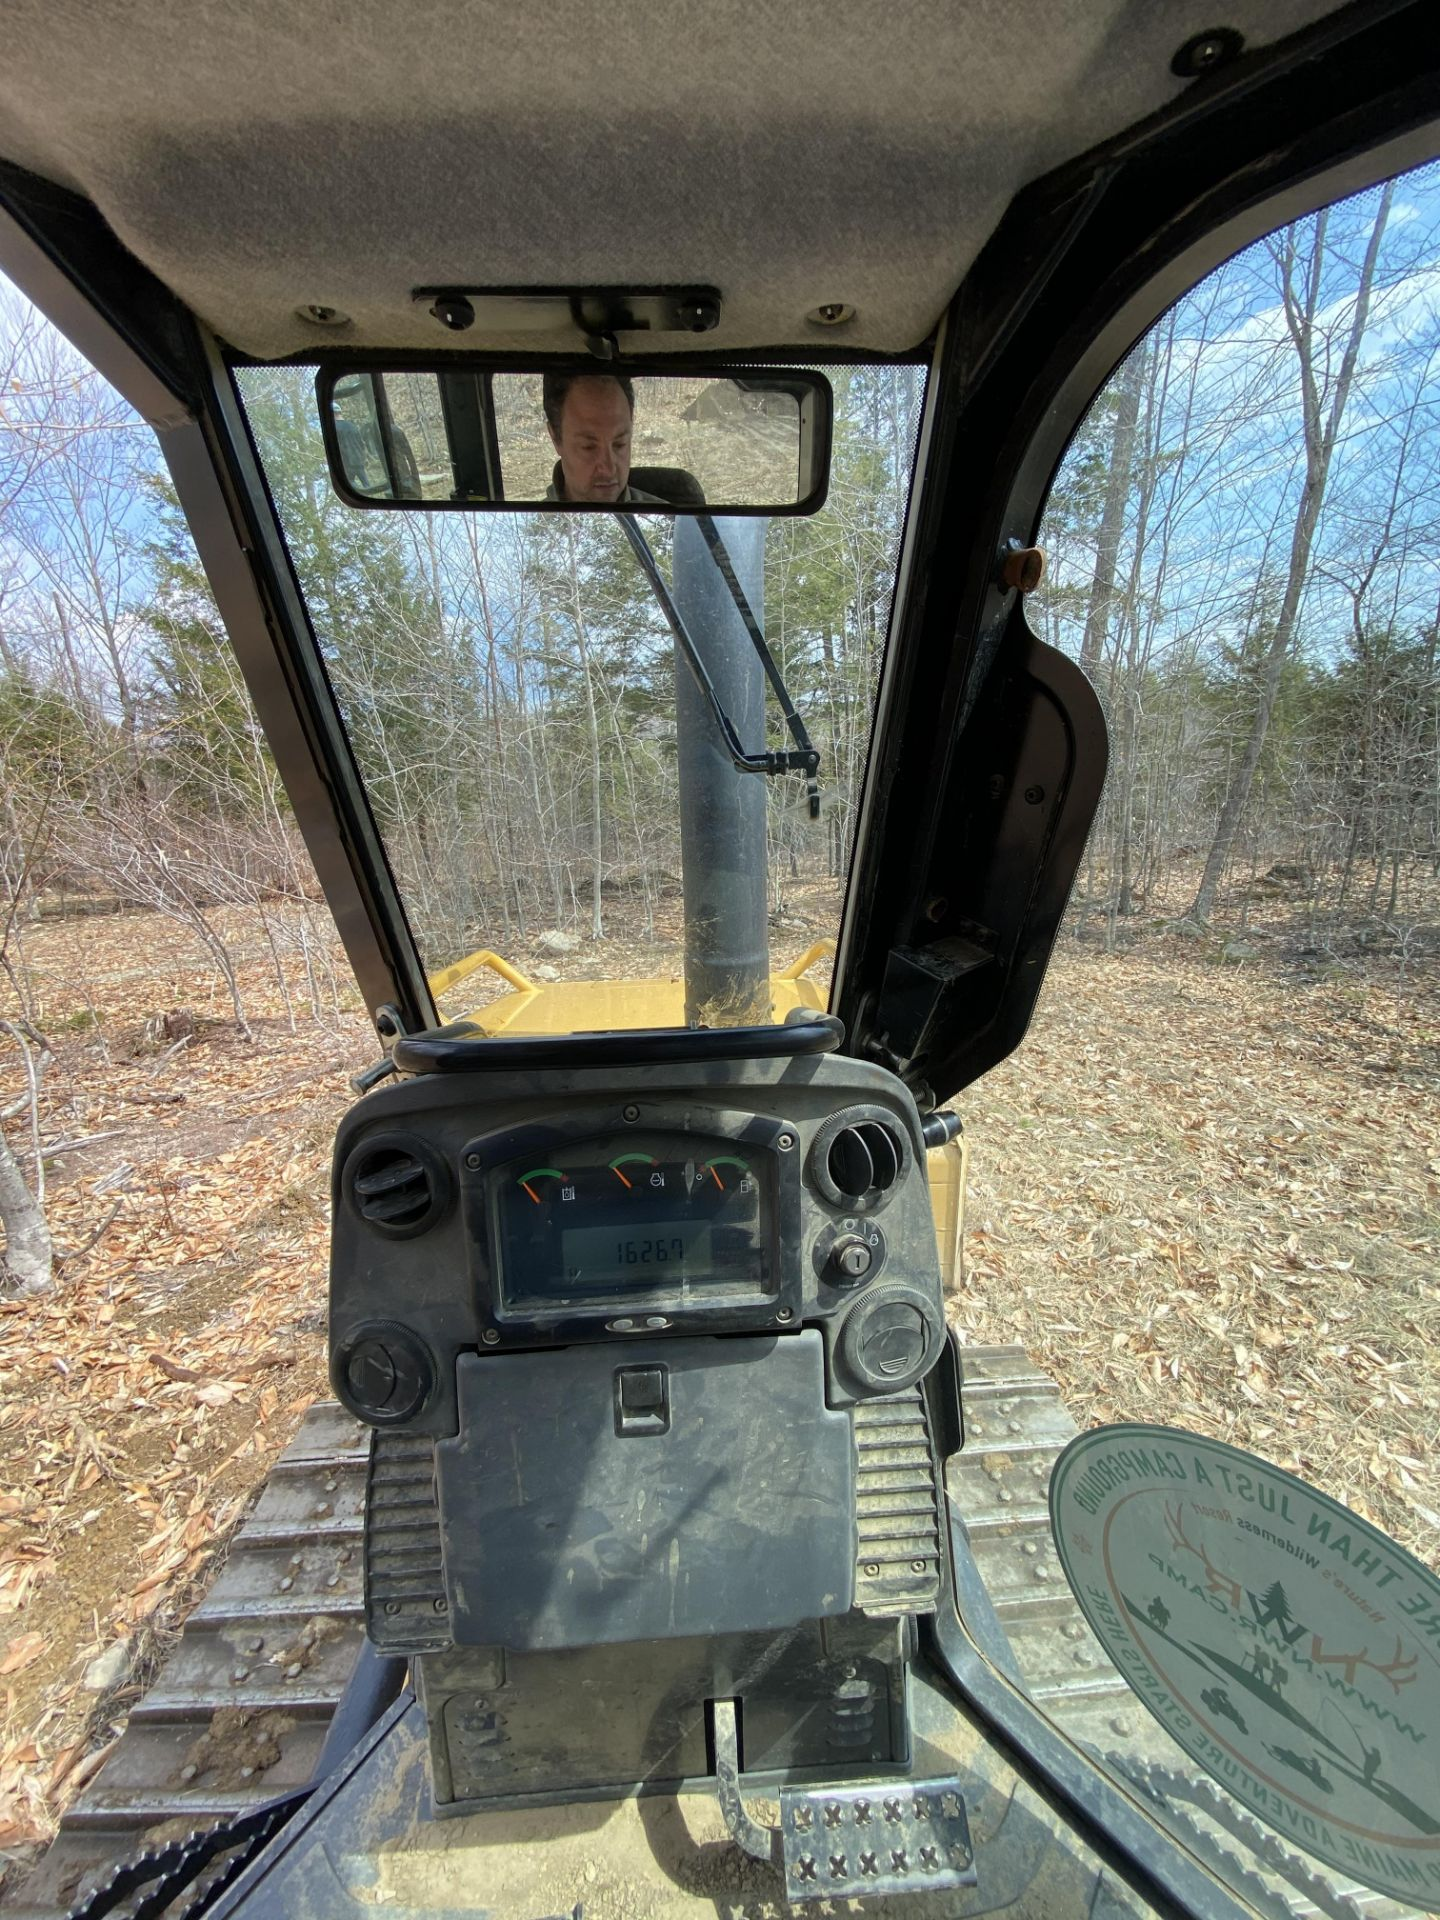 2014 Caterpillar Track Dozer #D3K2XL w/ 8' Plow, CAT 4.4 ACE RT Diesel Engine, HRS: 1926, PIN#: - Image 6 of 9